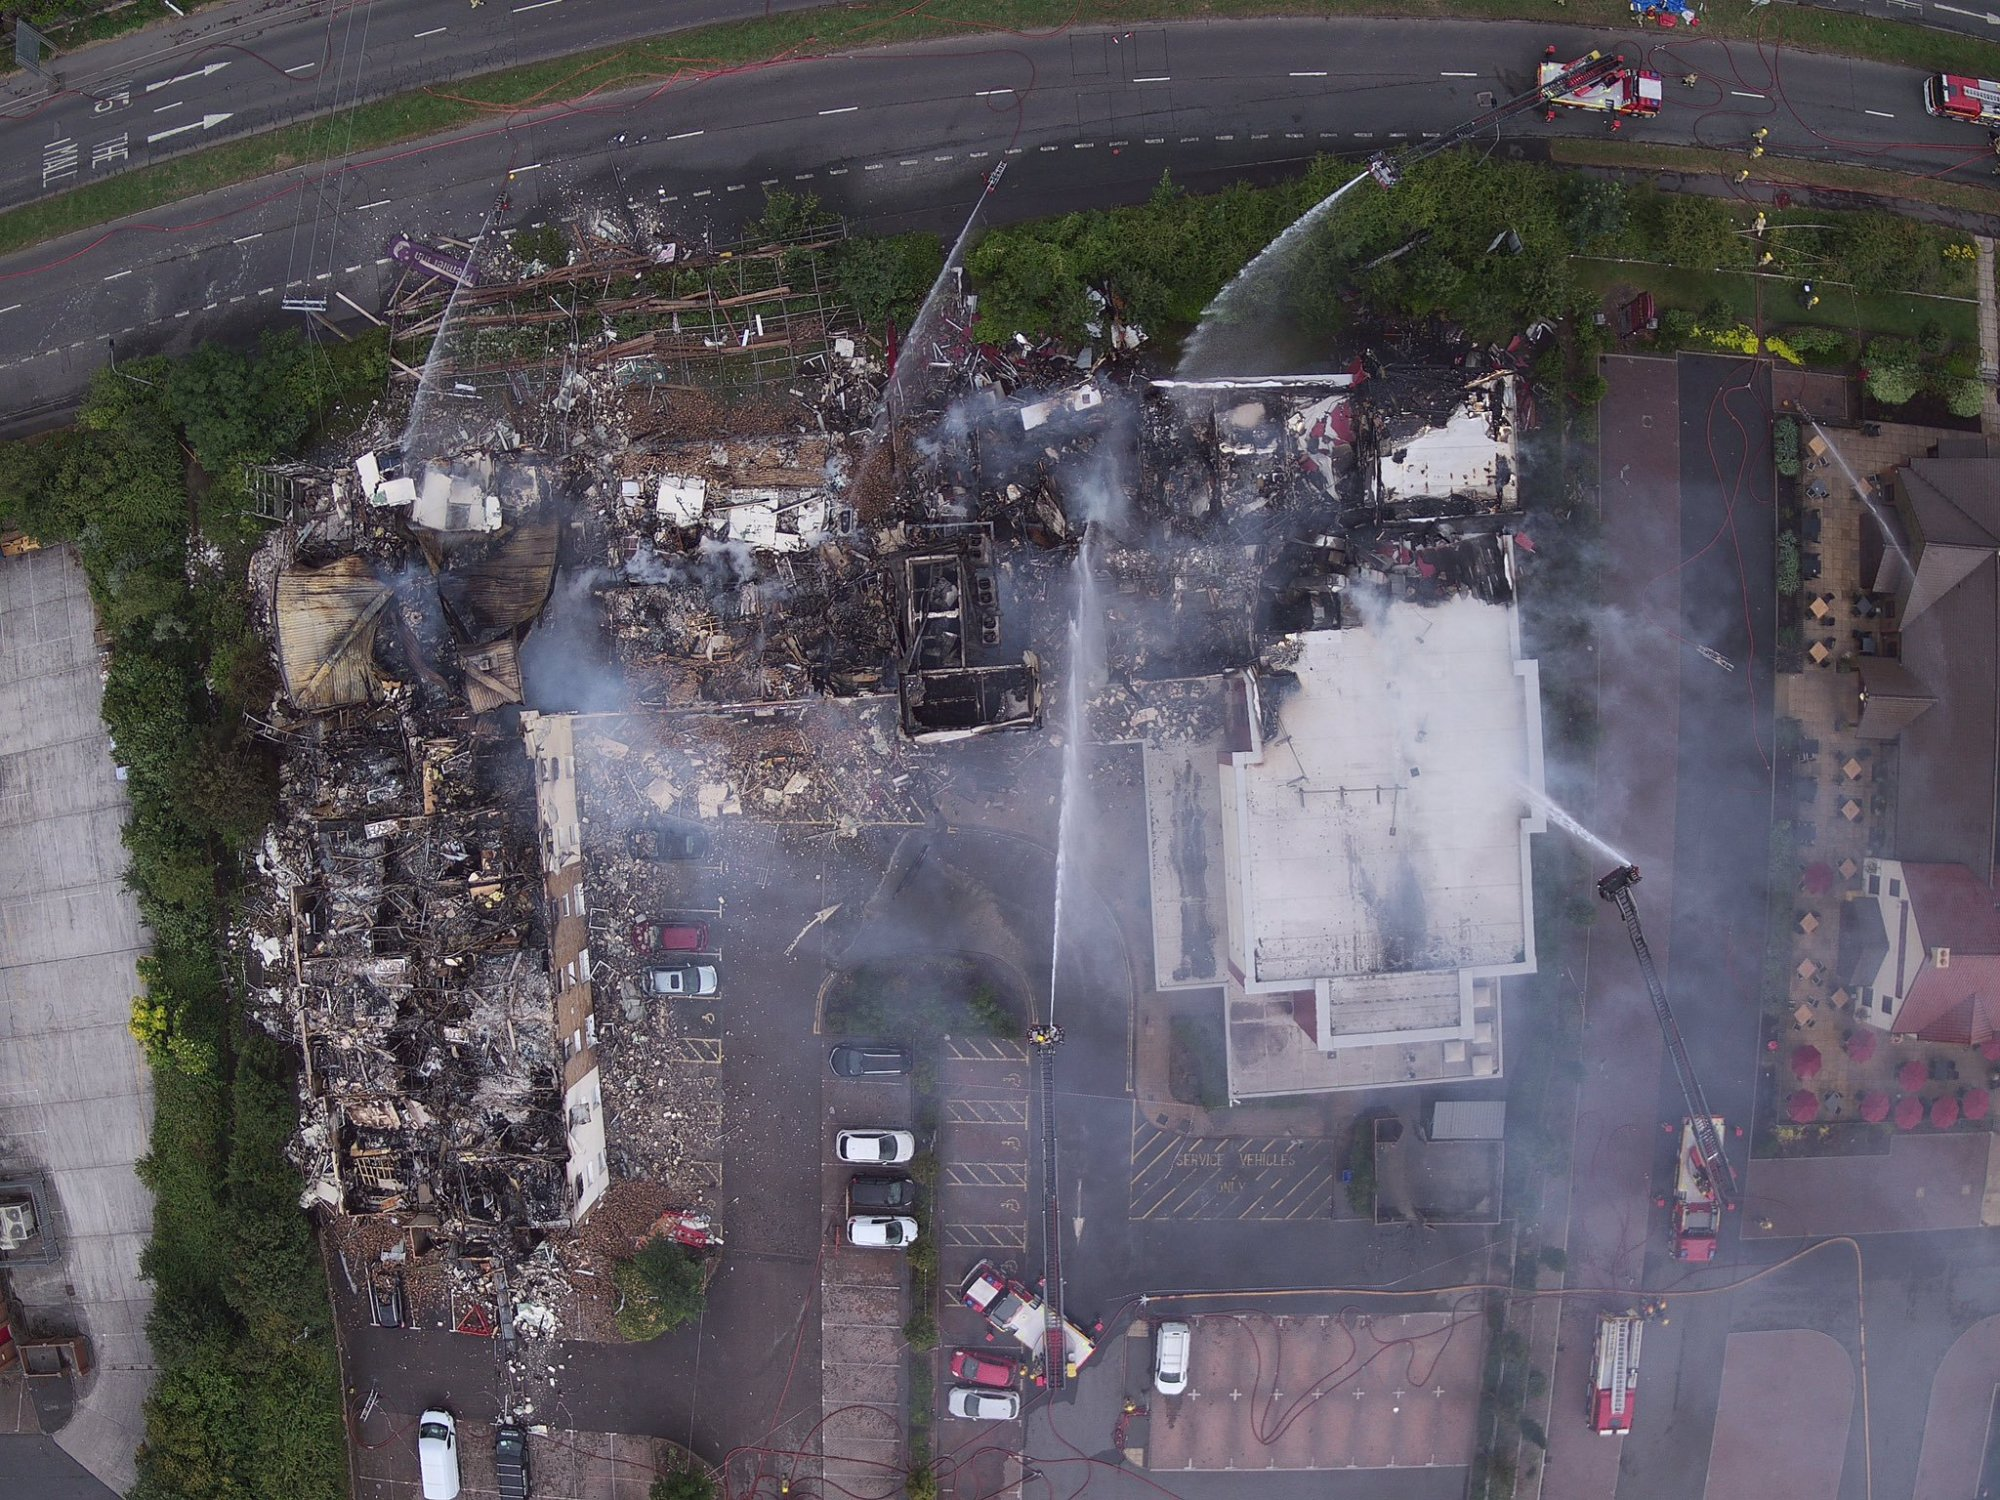 Another drone shot of the Bristo Premier Inn fire